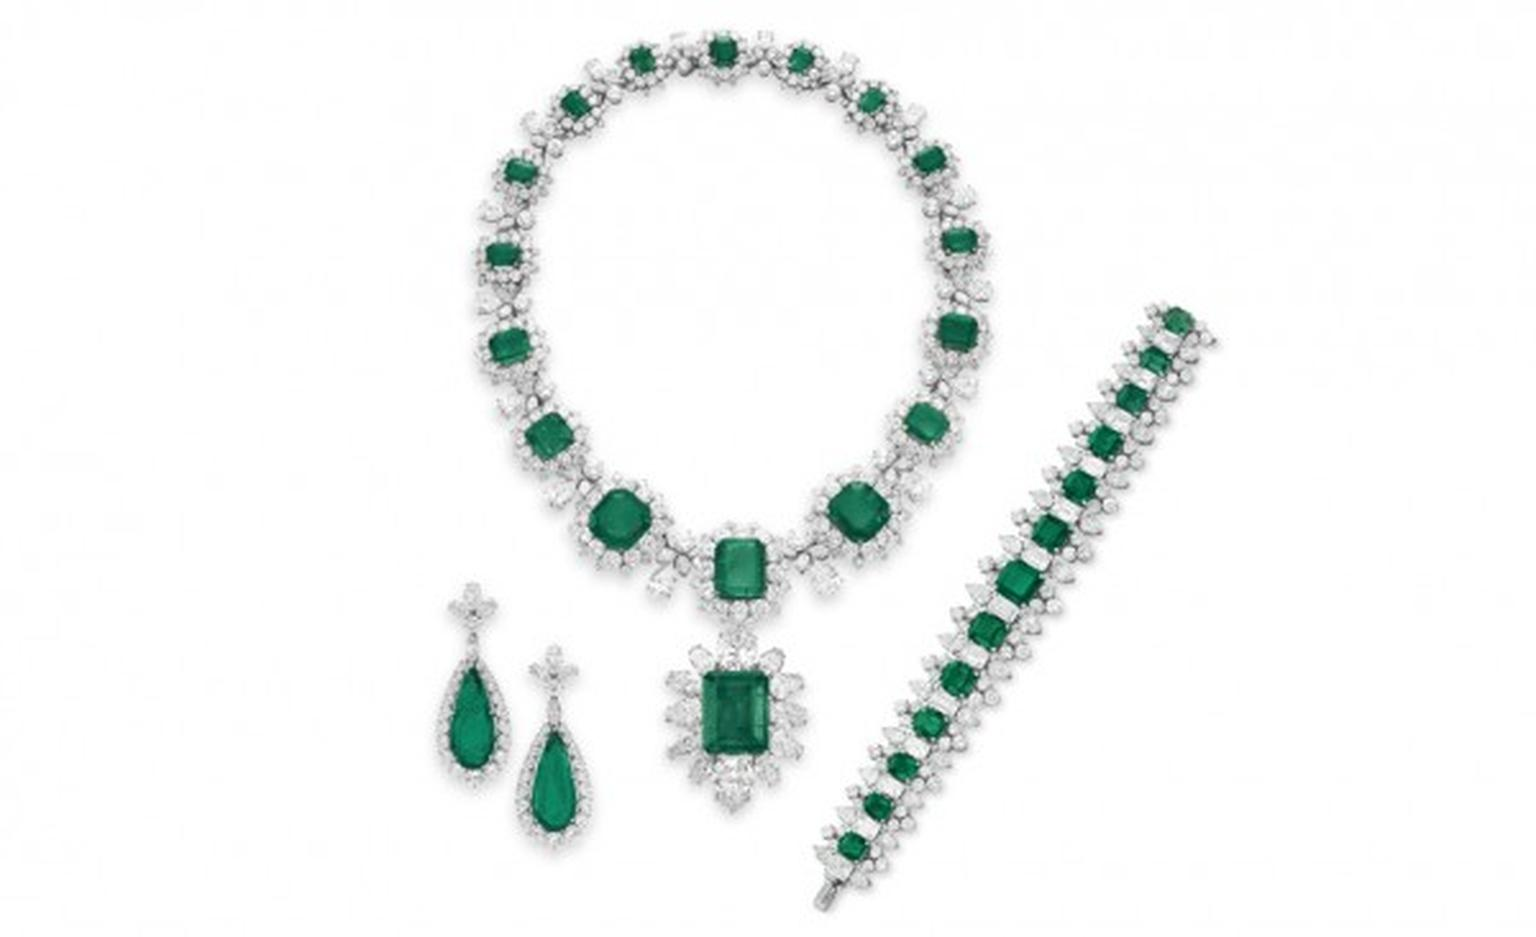 The Elizabeth Taylor Bulgari emerald suite, given to her by Richard Burton. The pendant alone achieved US$6,587,500 at the Christie's auction of Elizabeth Taylor's estate in 2011. The ring sold for approximately US$3 million, the necklace for around US$6